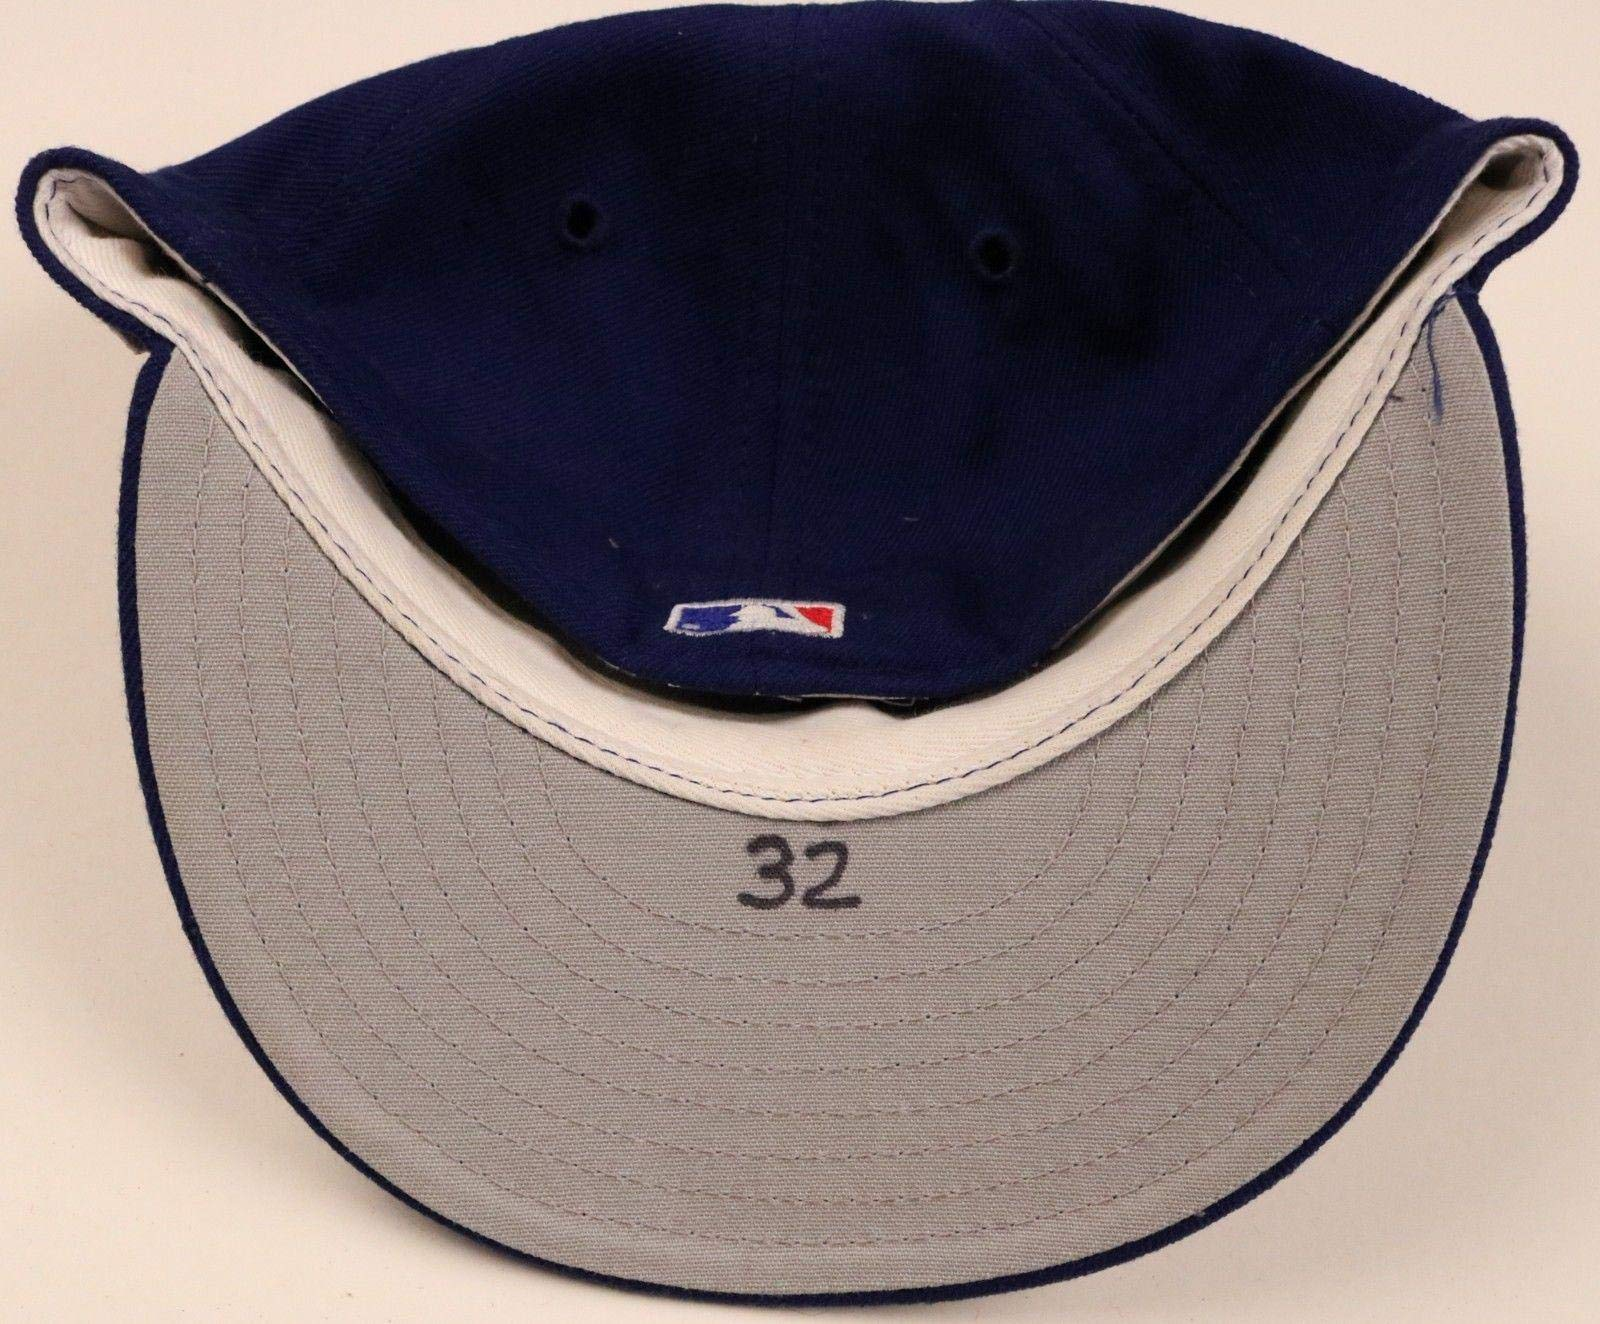 Texas Rangers #32 Game Used Worn Hat/Cap Game Used MLB Hats